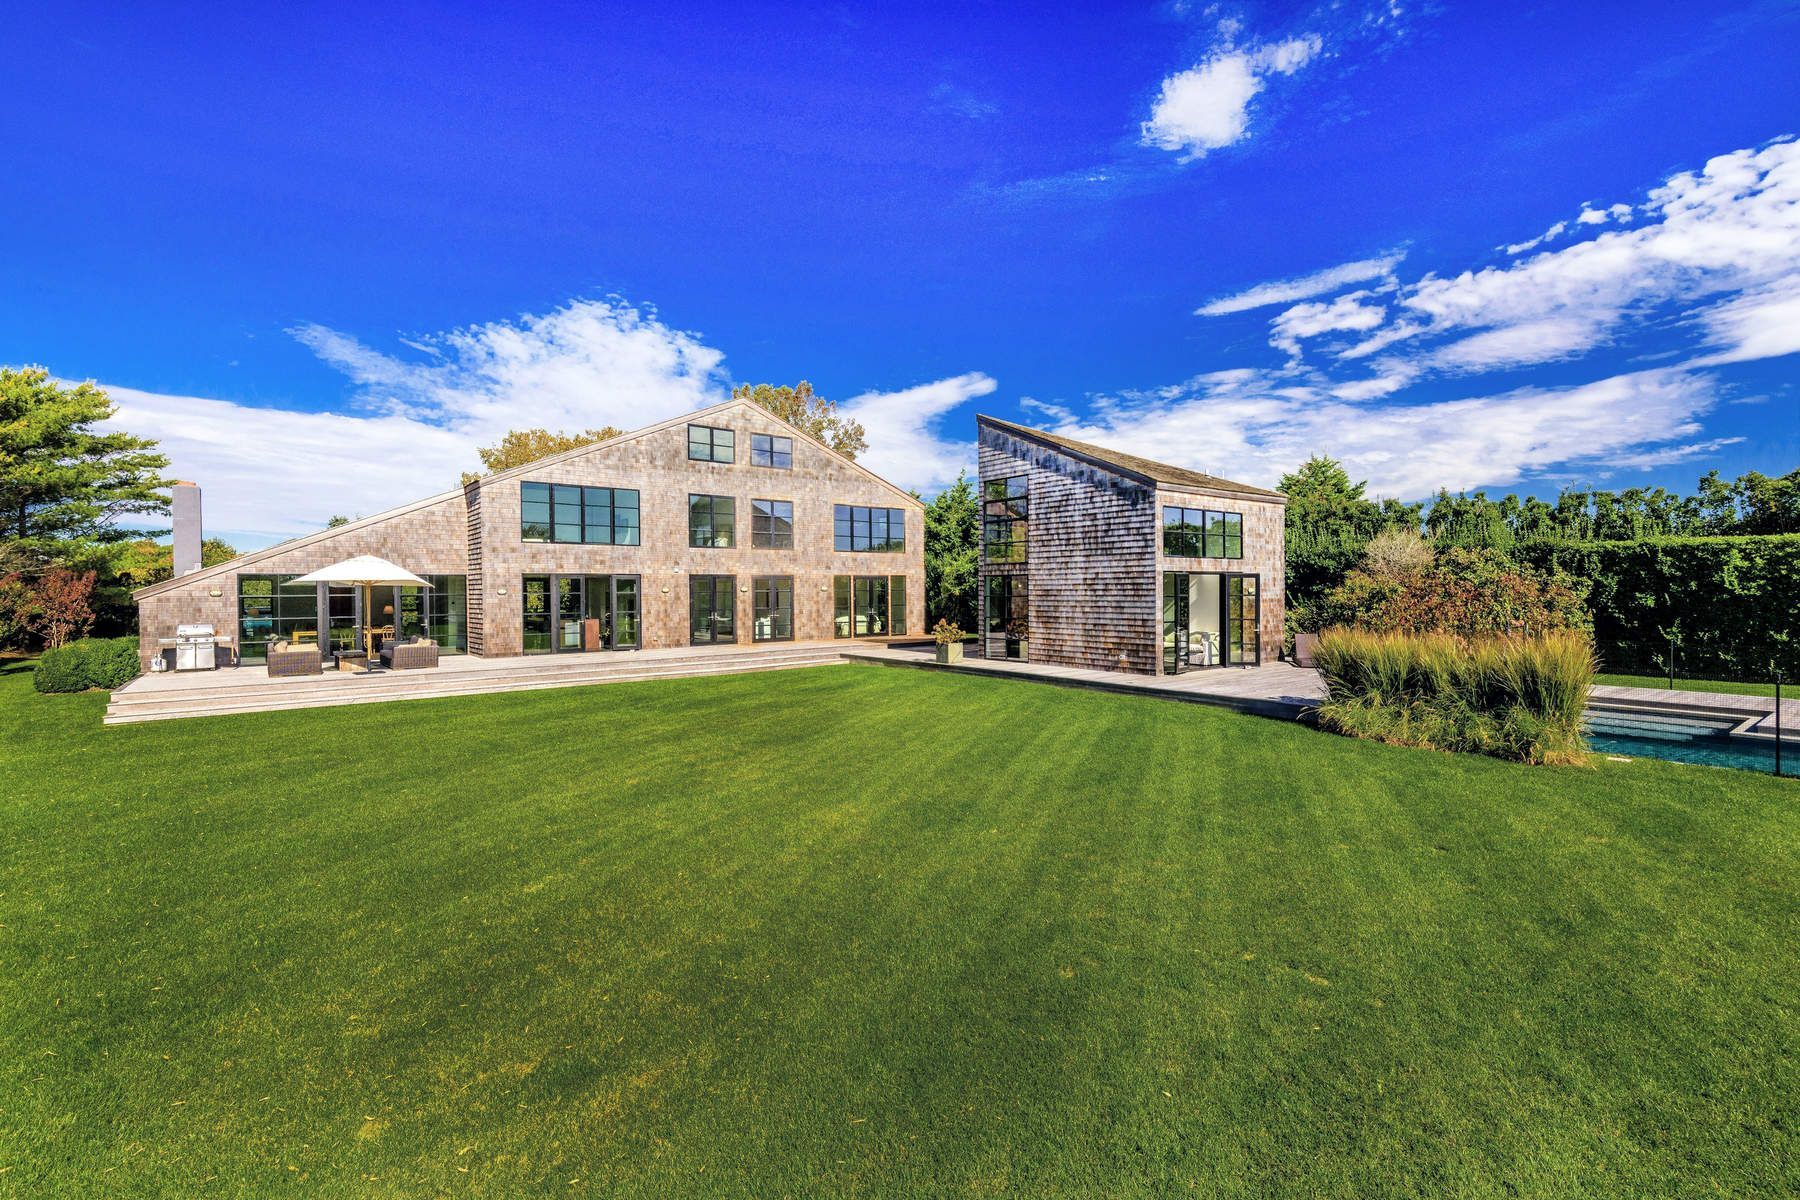 Single Family Homes for Sale at Modern Chic Personified 811 Halsey Lane Bridgehampton, New York 11932 United States